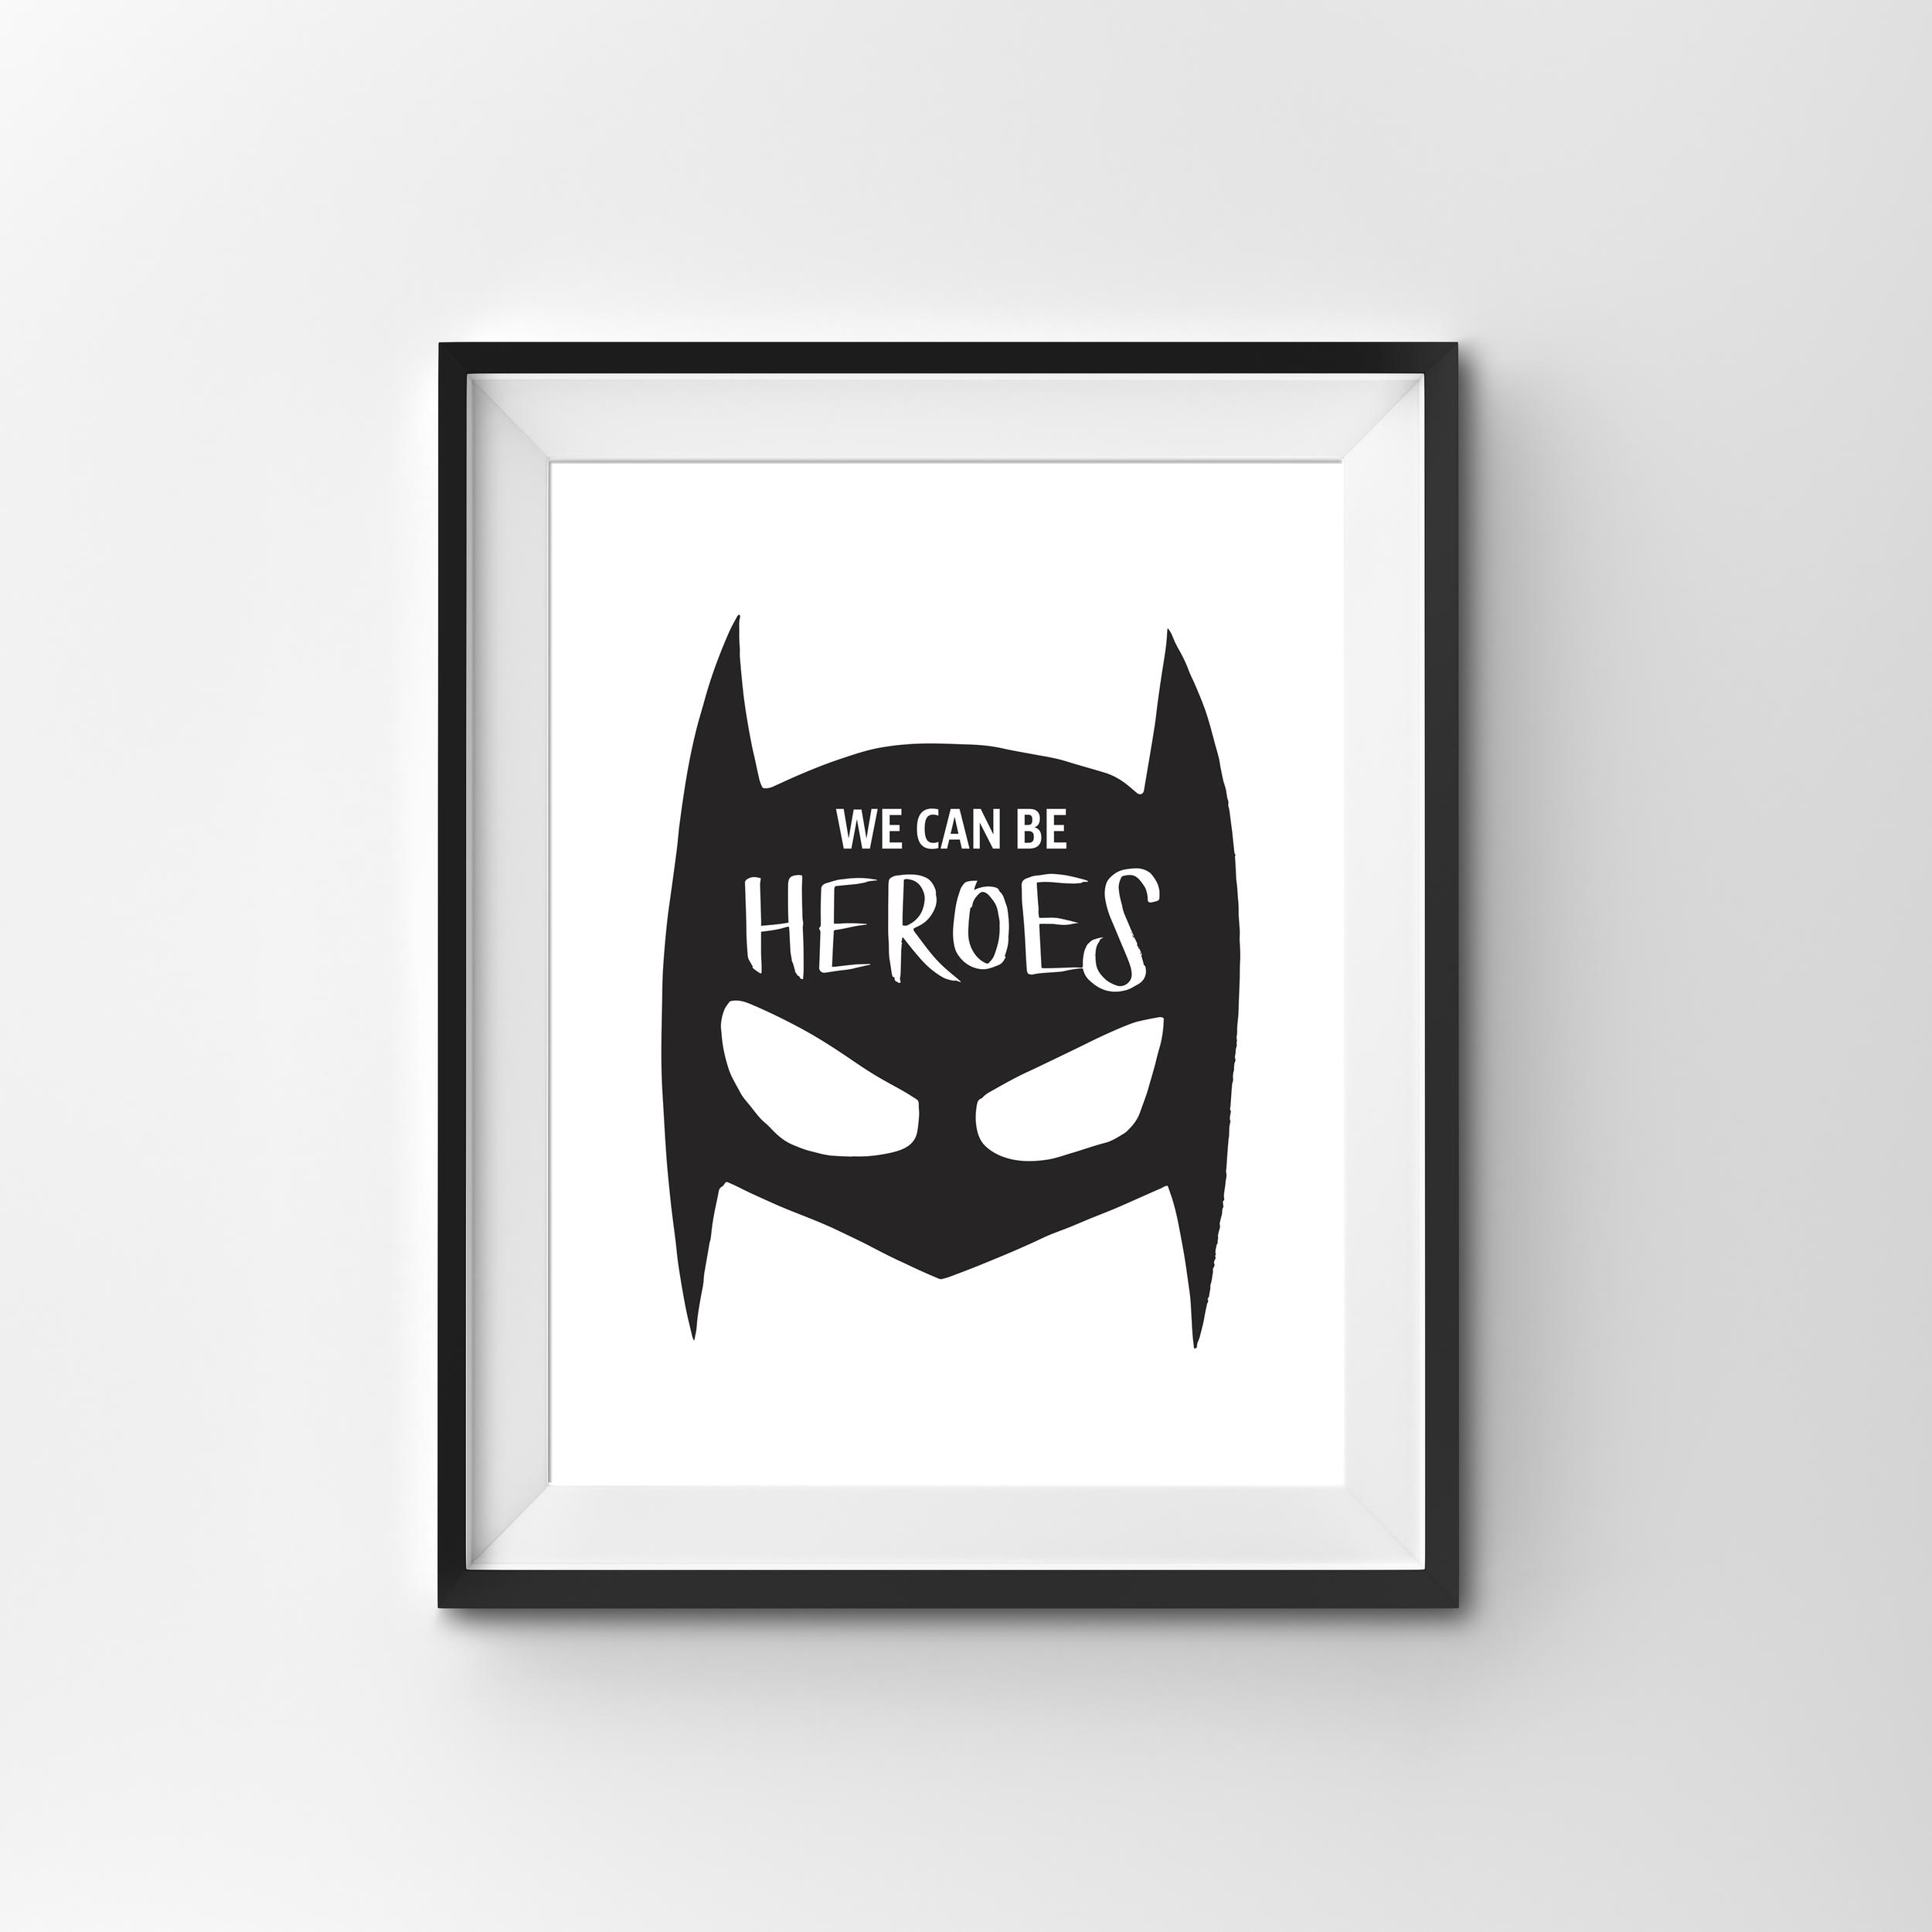 HEROES   BLACK & WHITE PRINT PRINTED ON 300gsm TEXTURED CARD STOCK   A4 $17.00   A3 $27.00